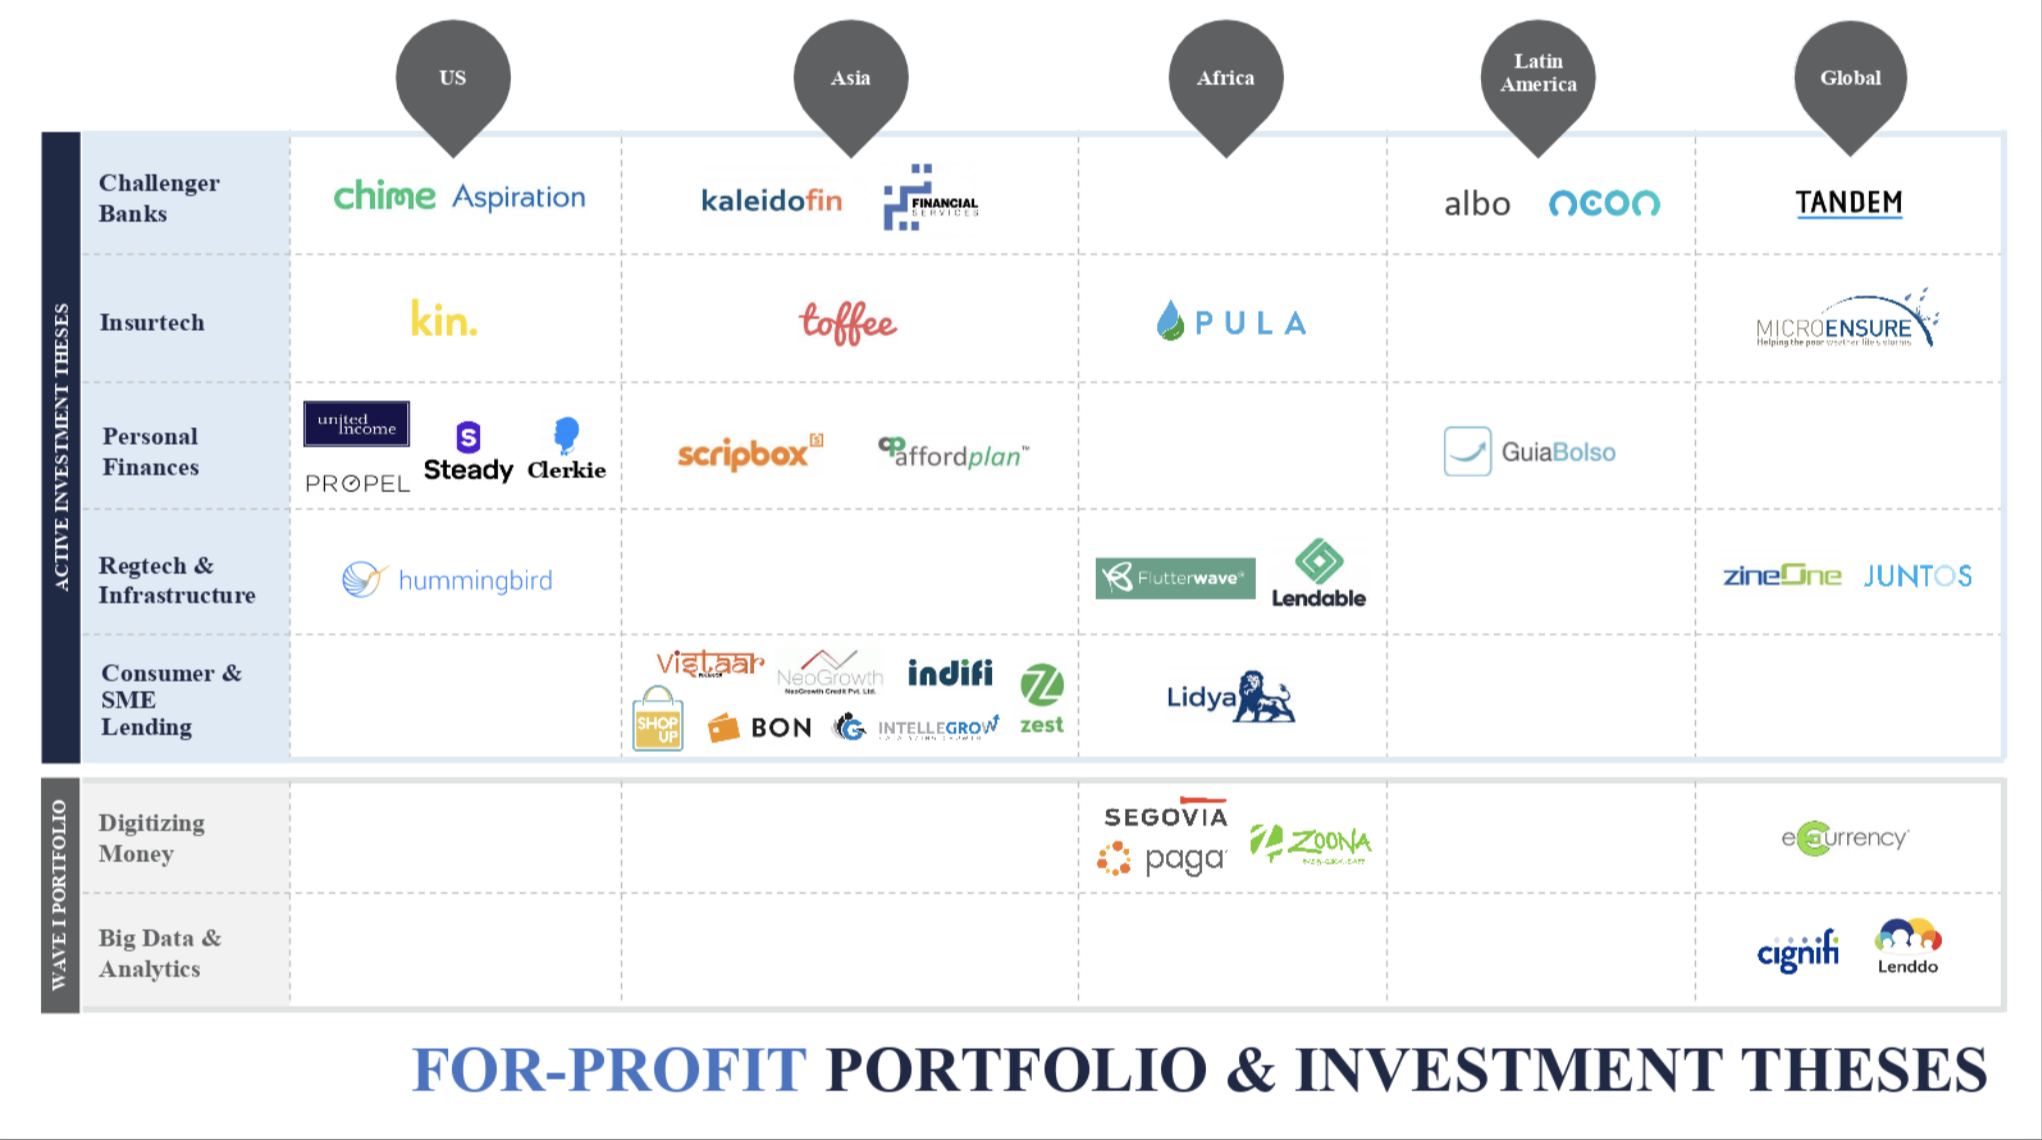 Omidyar Network spins out its fintech investment arm as Flourish, with up to $300 million Screen Shot 2019 03 06 at 4